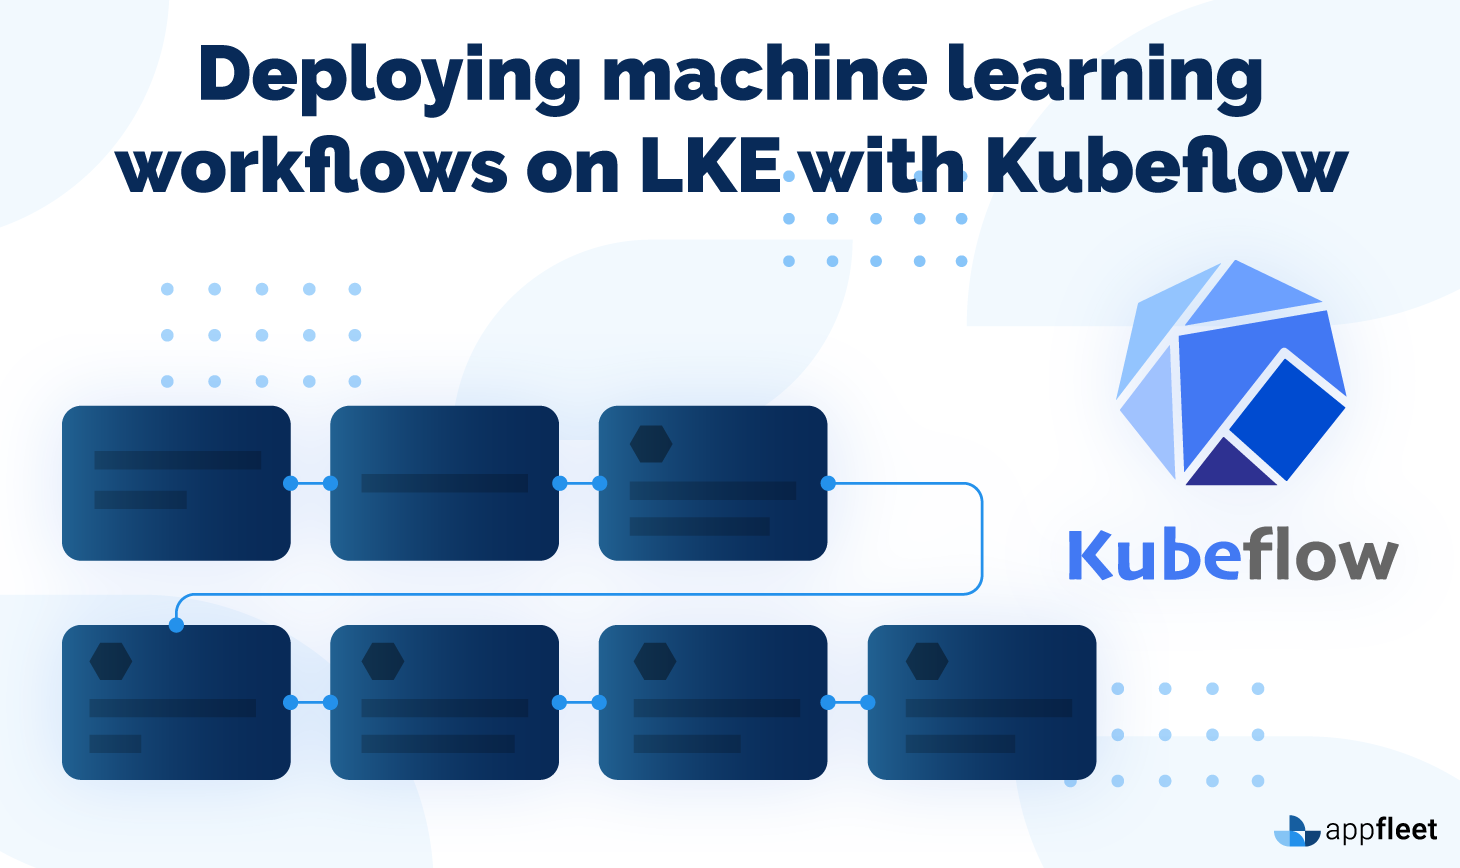 Deploying machine learning workflows on LKE with Kubeflow